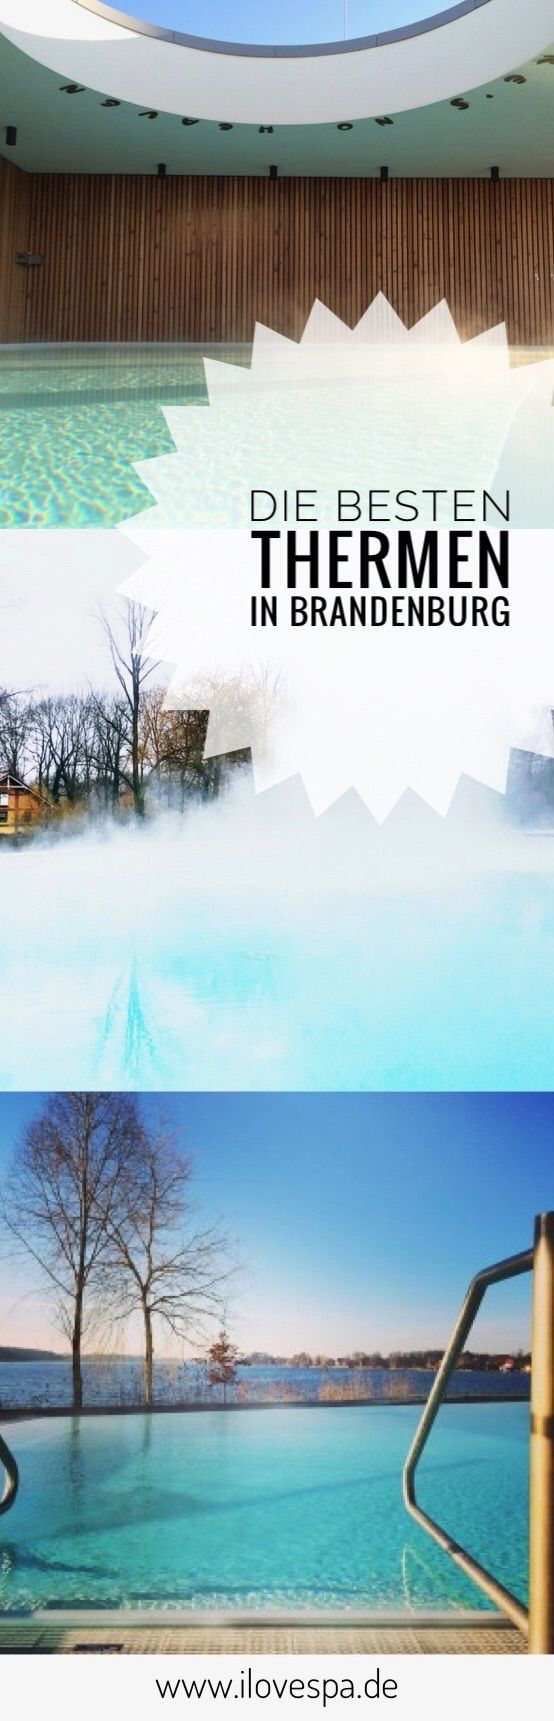 Die besten Thermen in Brandenburg - Spa & Wellness Berlin Brandenburg